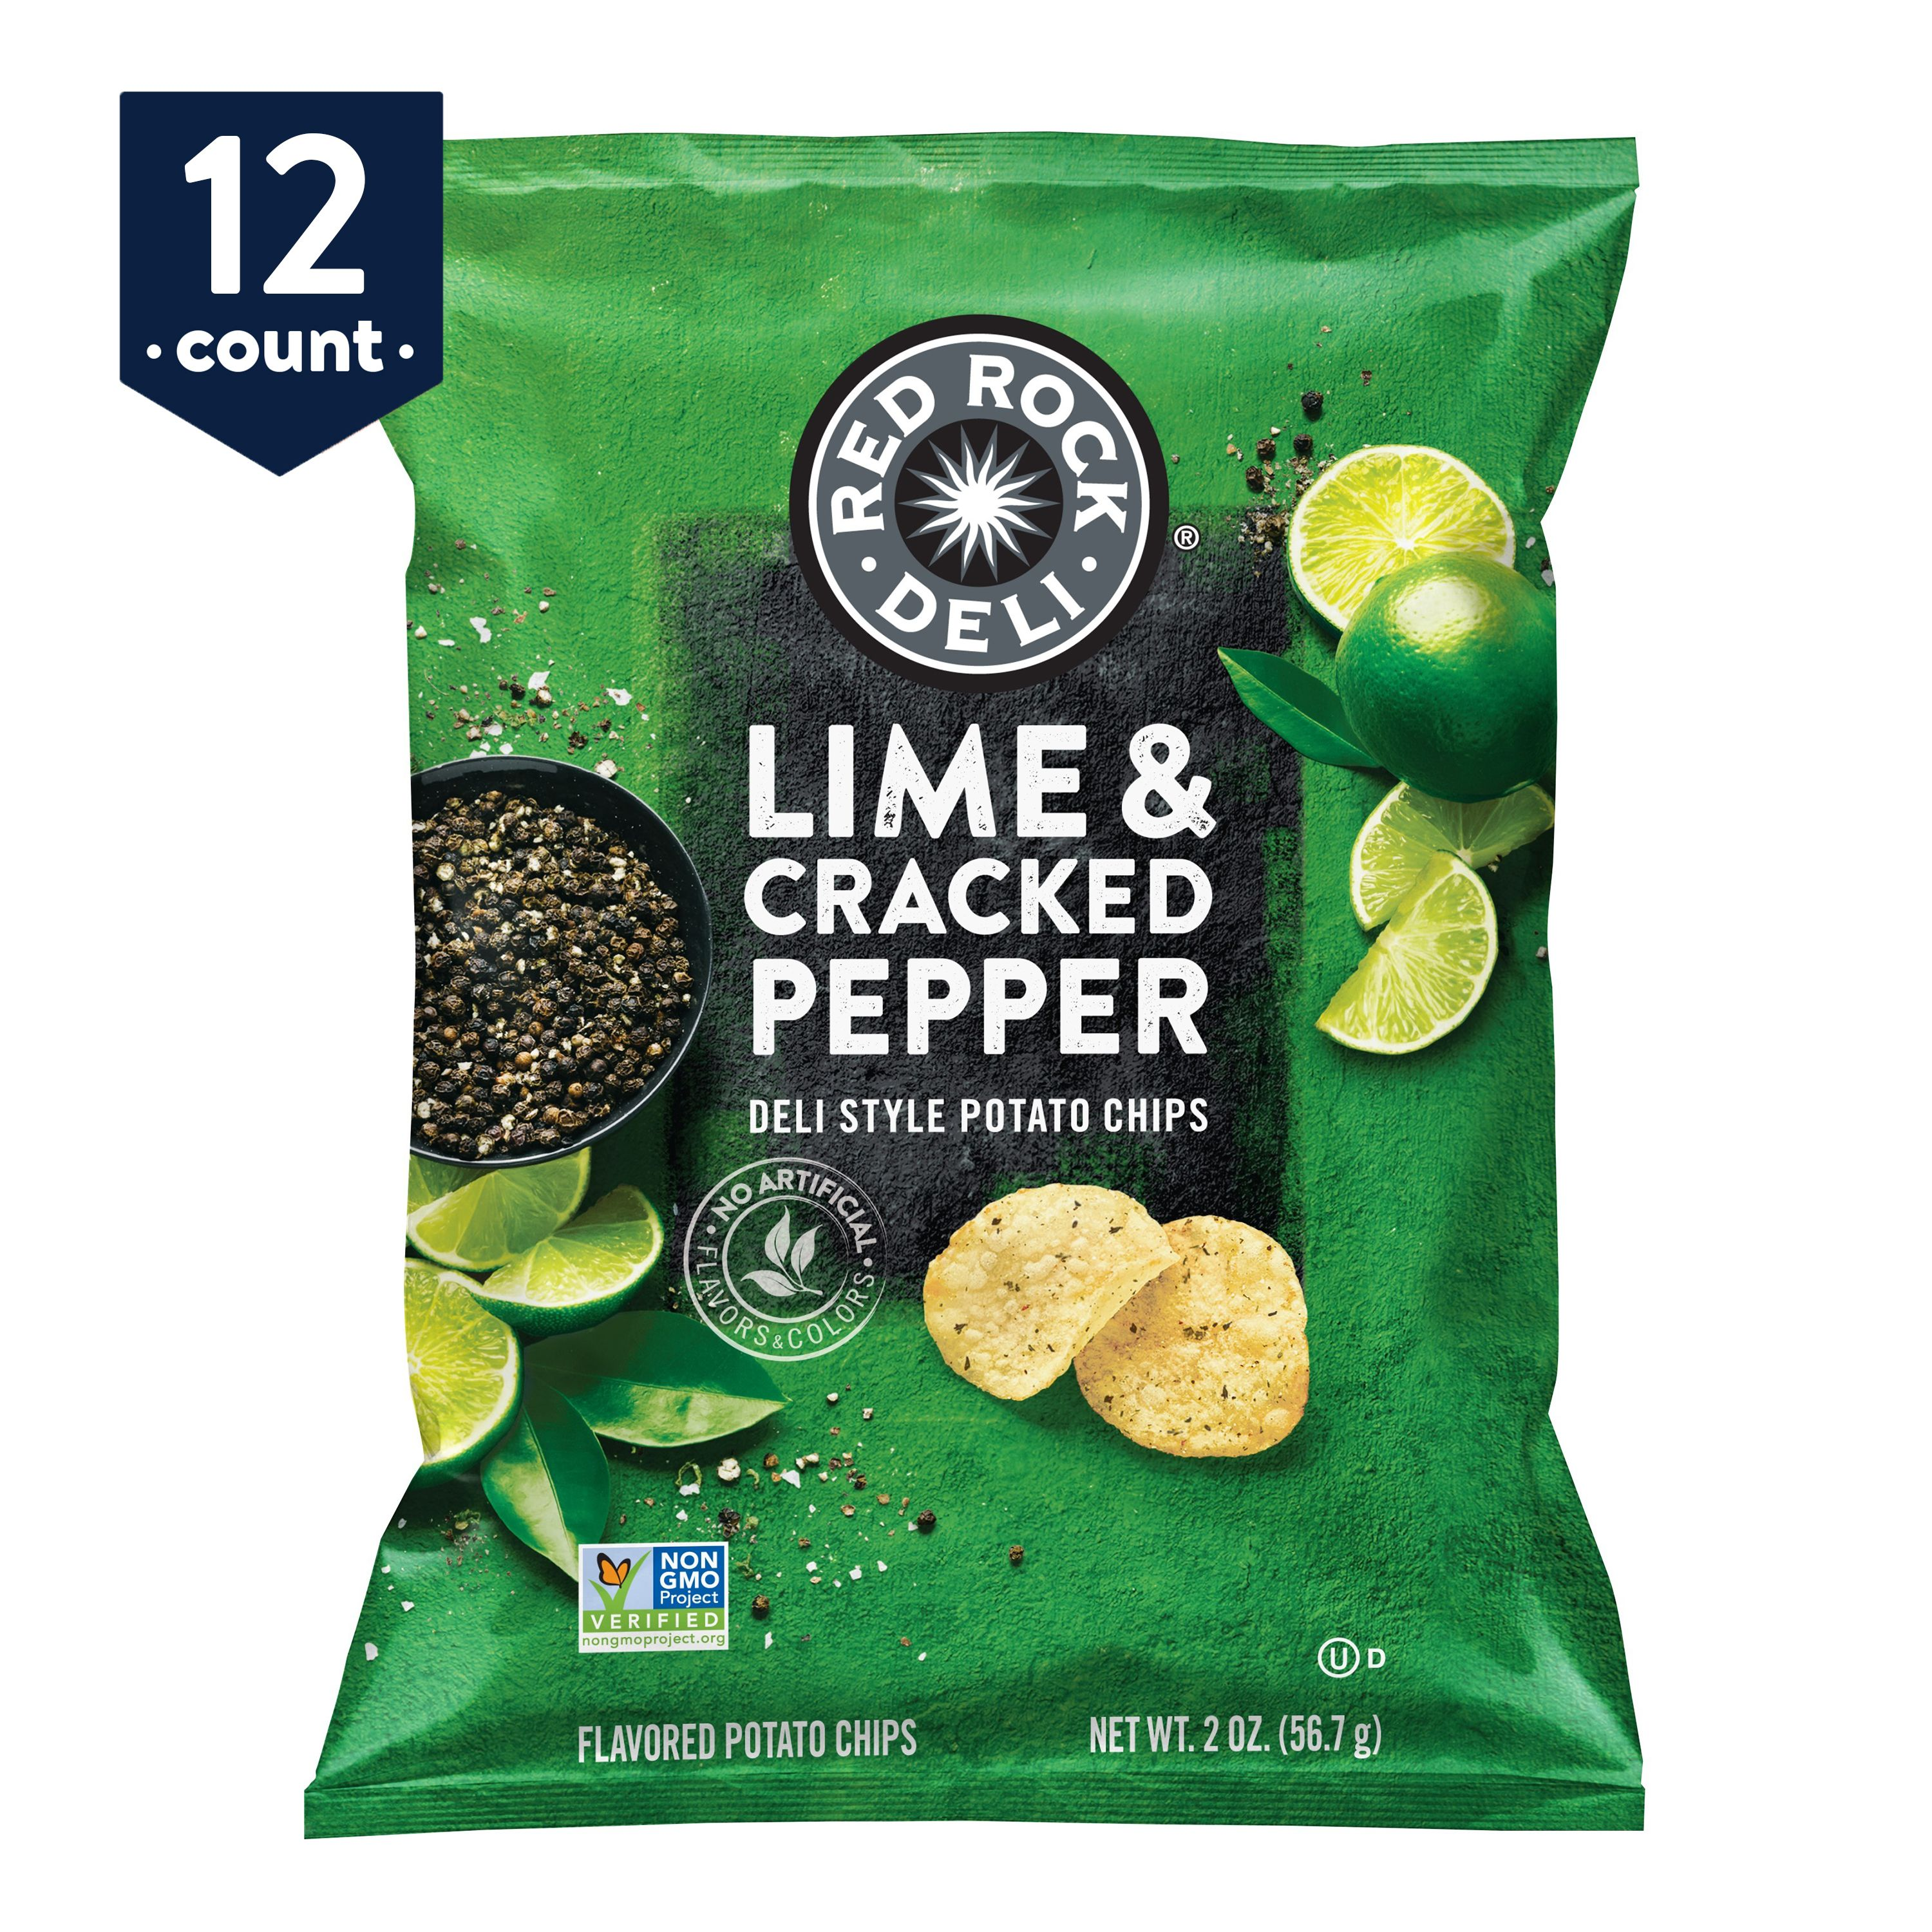 Red Rock Deli Lime & Cracked Pepper Flavored Deli Style Potato Chips Snack Pack, 2 oz Bags, 12 count